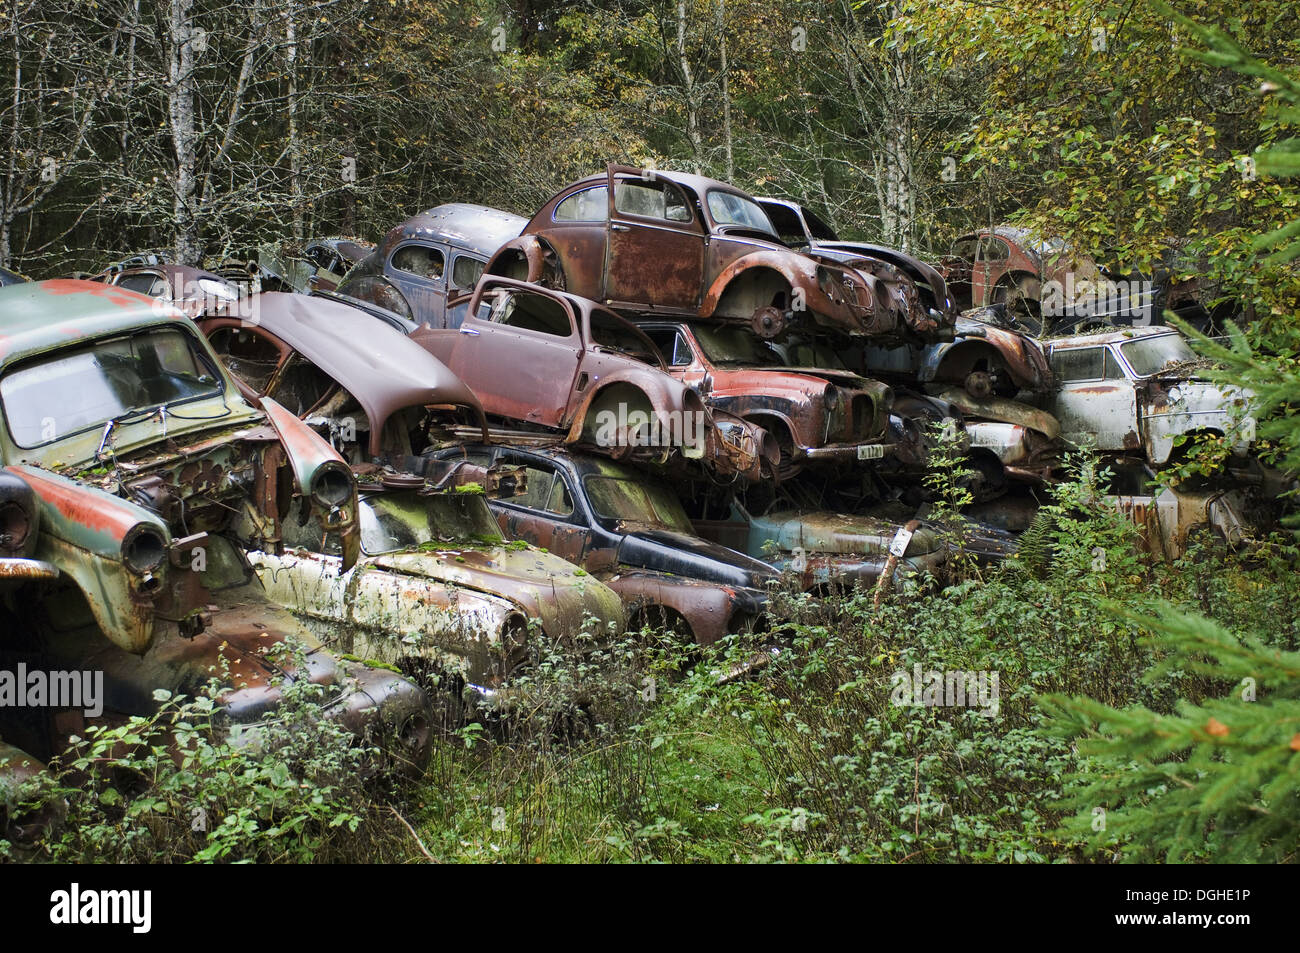 Pile of scrap cars in forest, Sweden - Stock Image